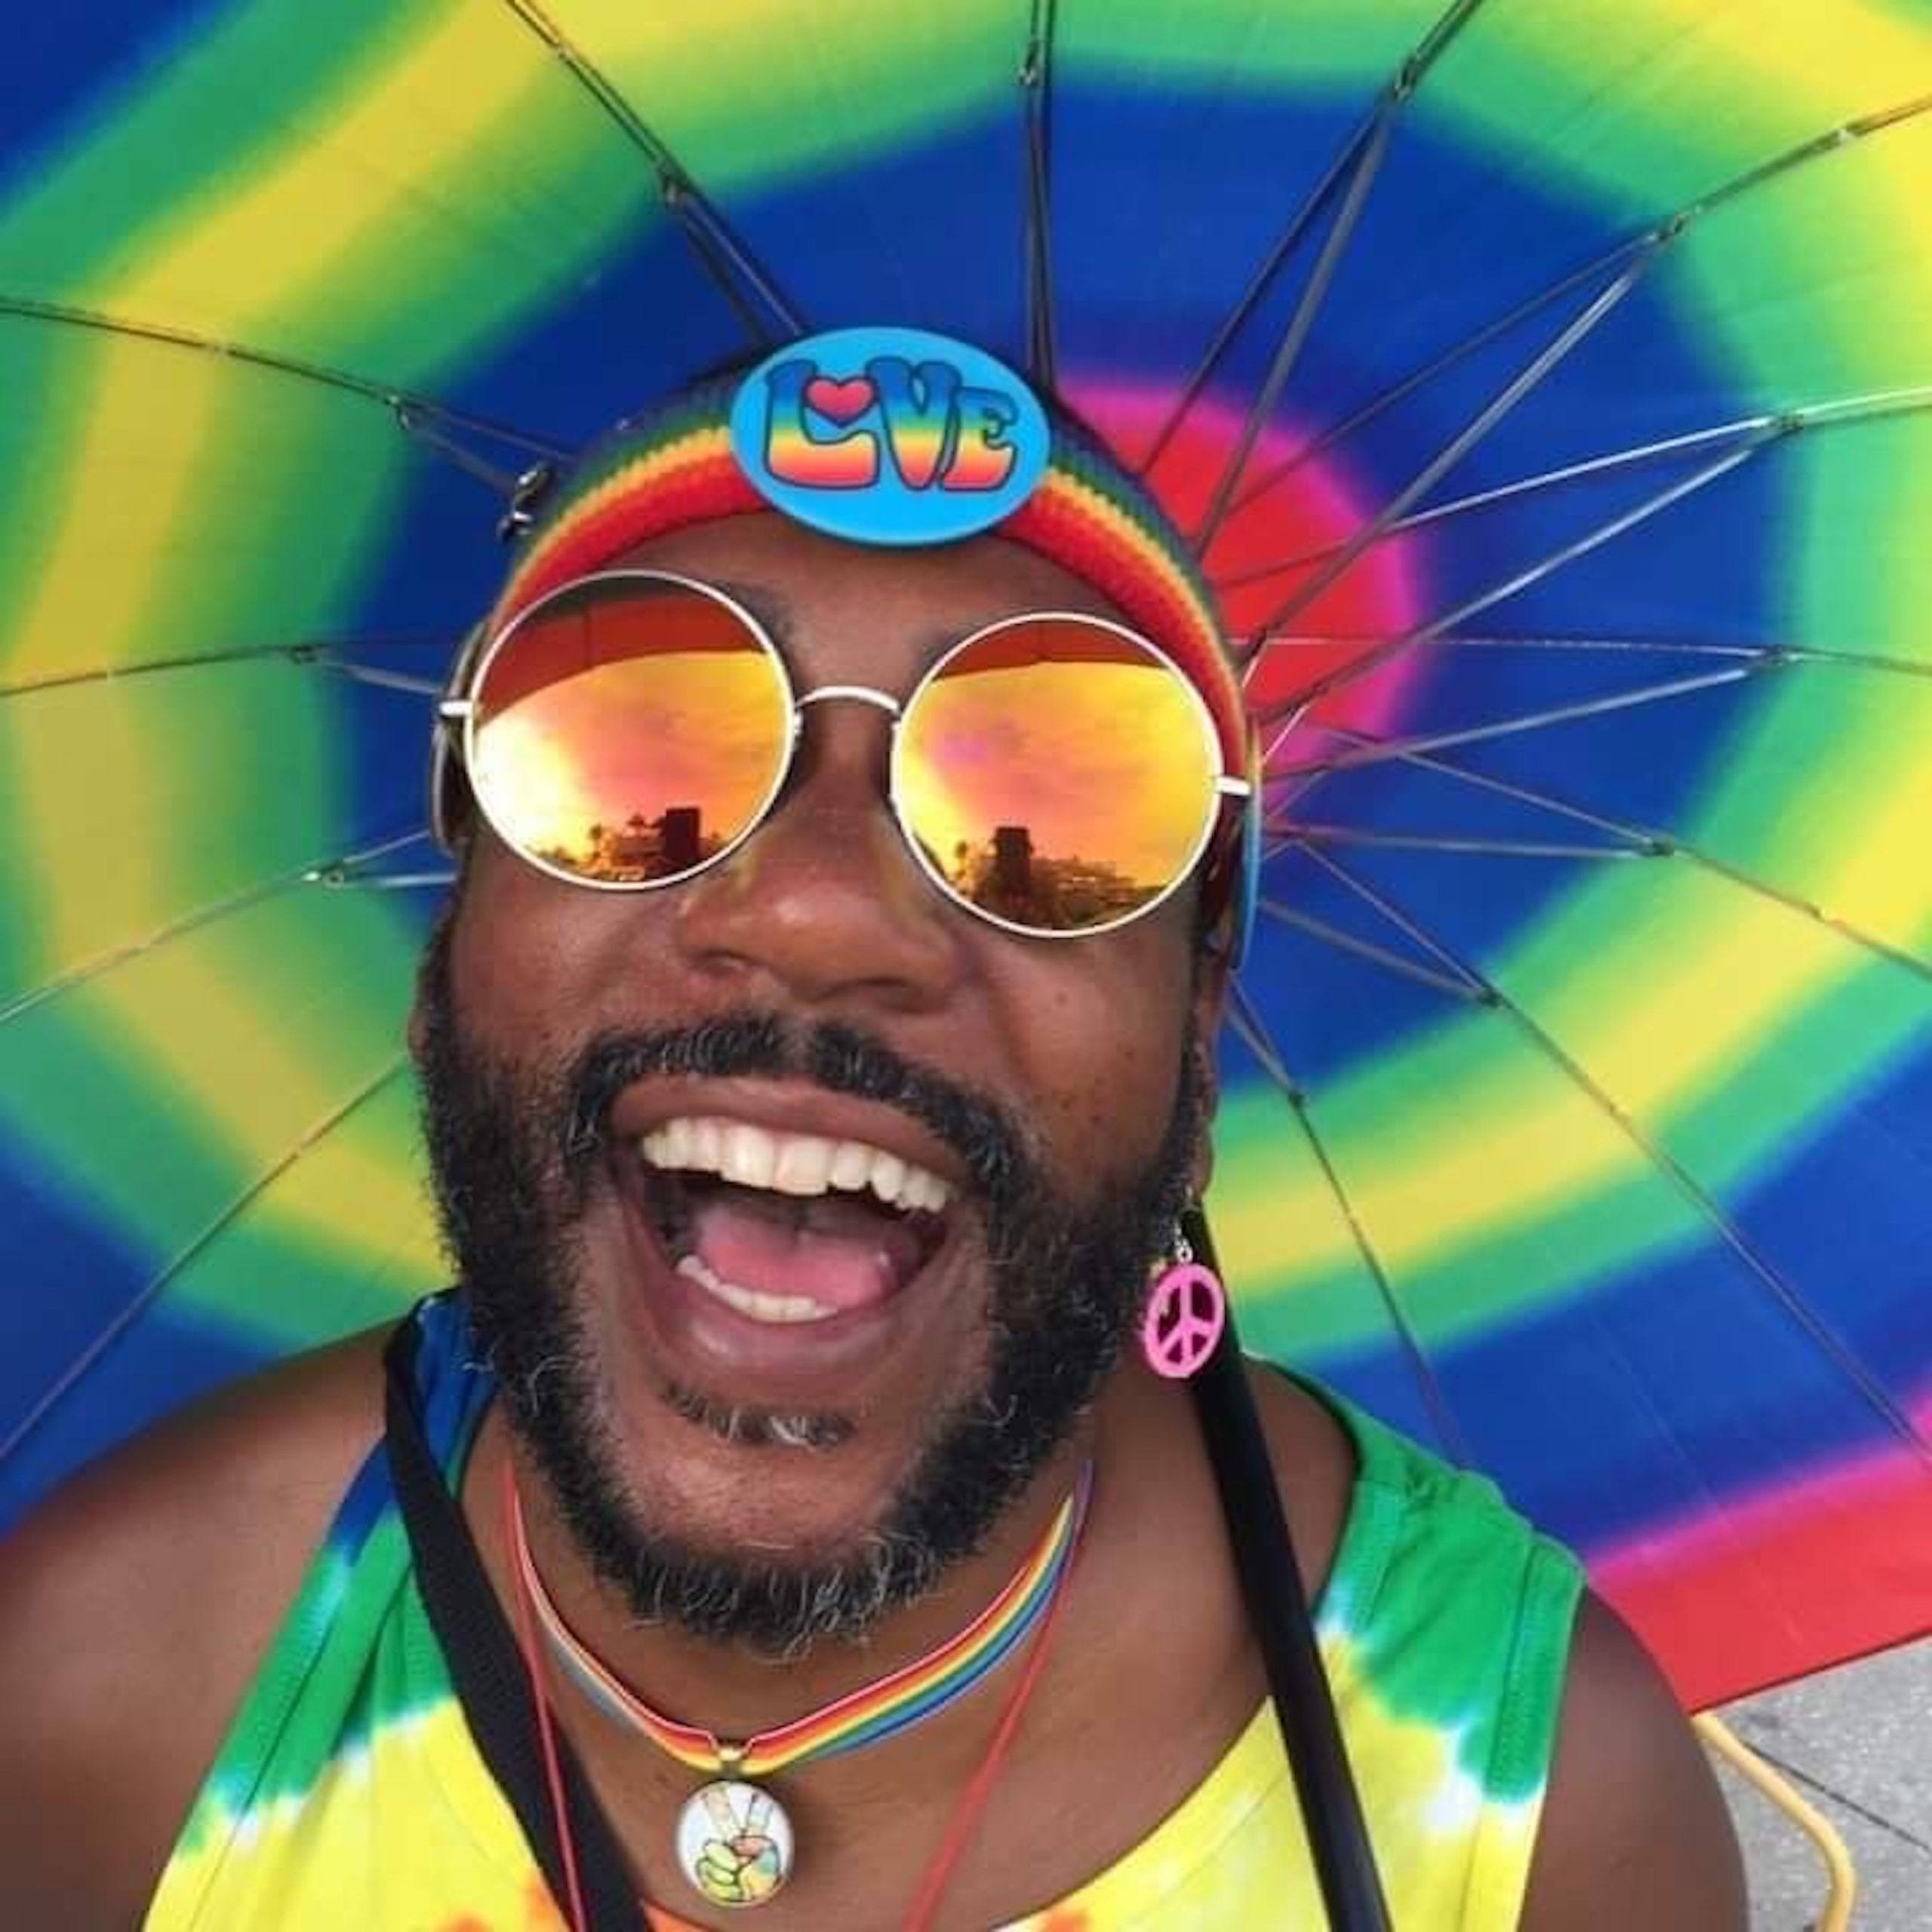 A man with a beard smiling and a rainbow umbrella background